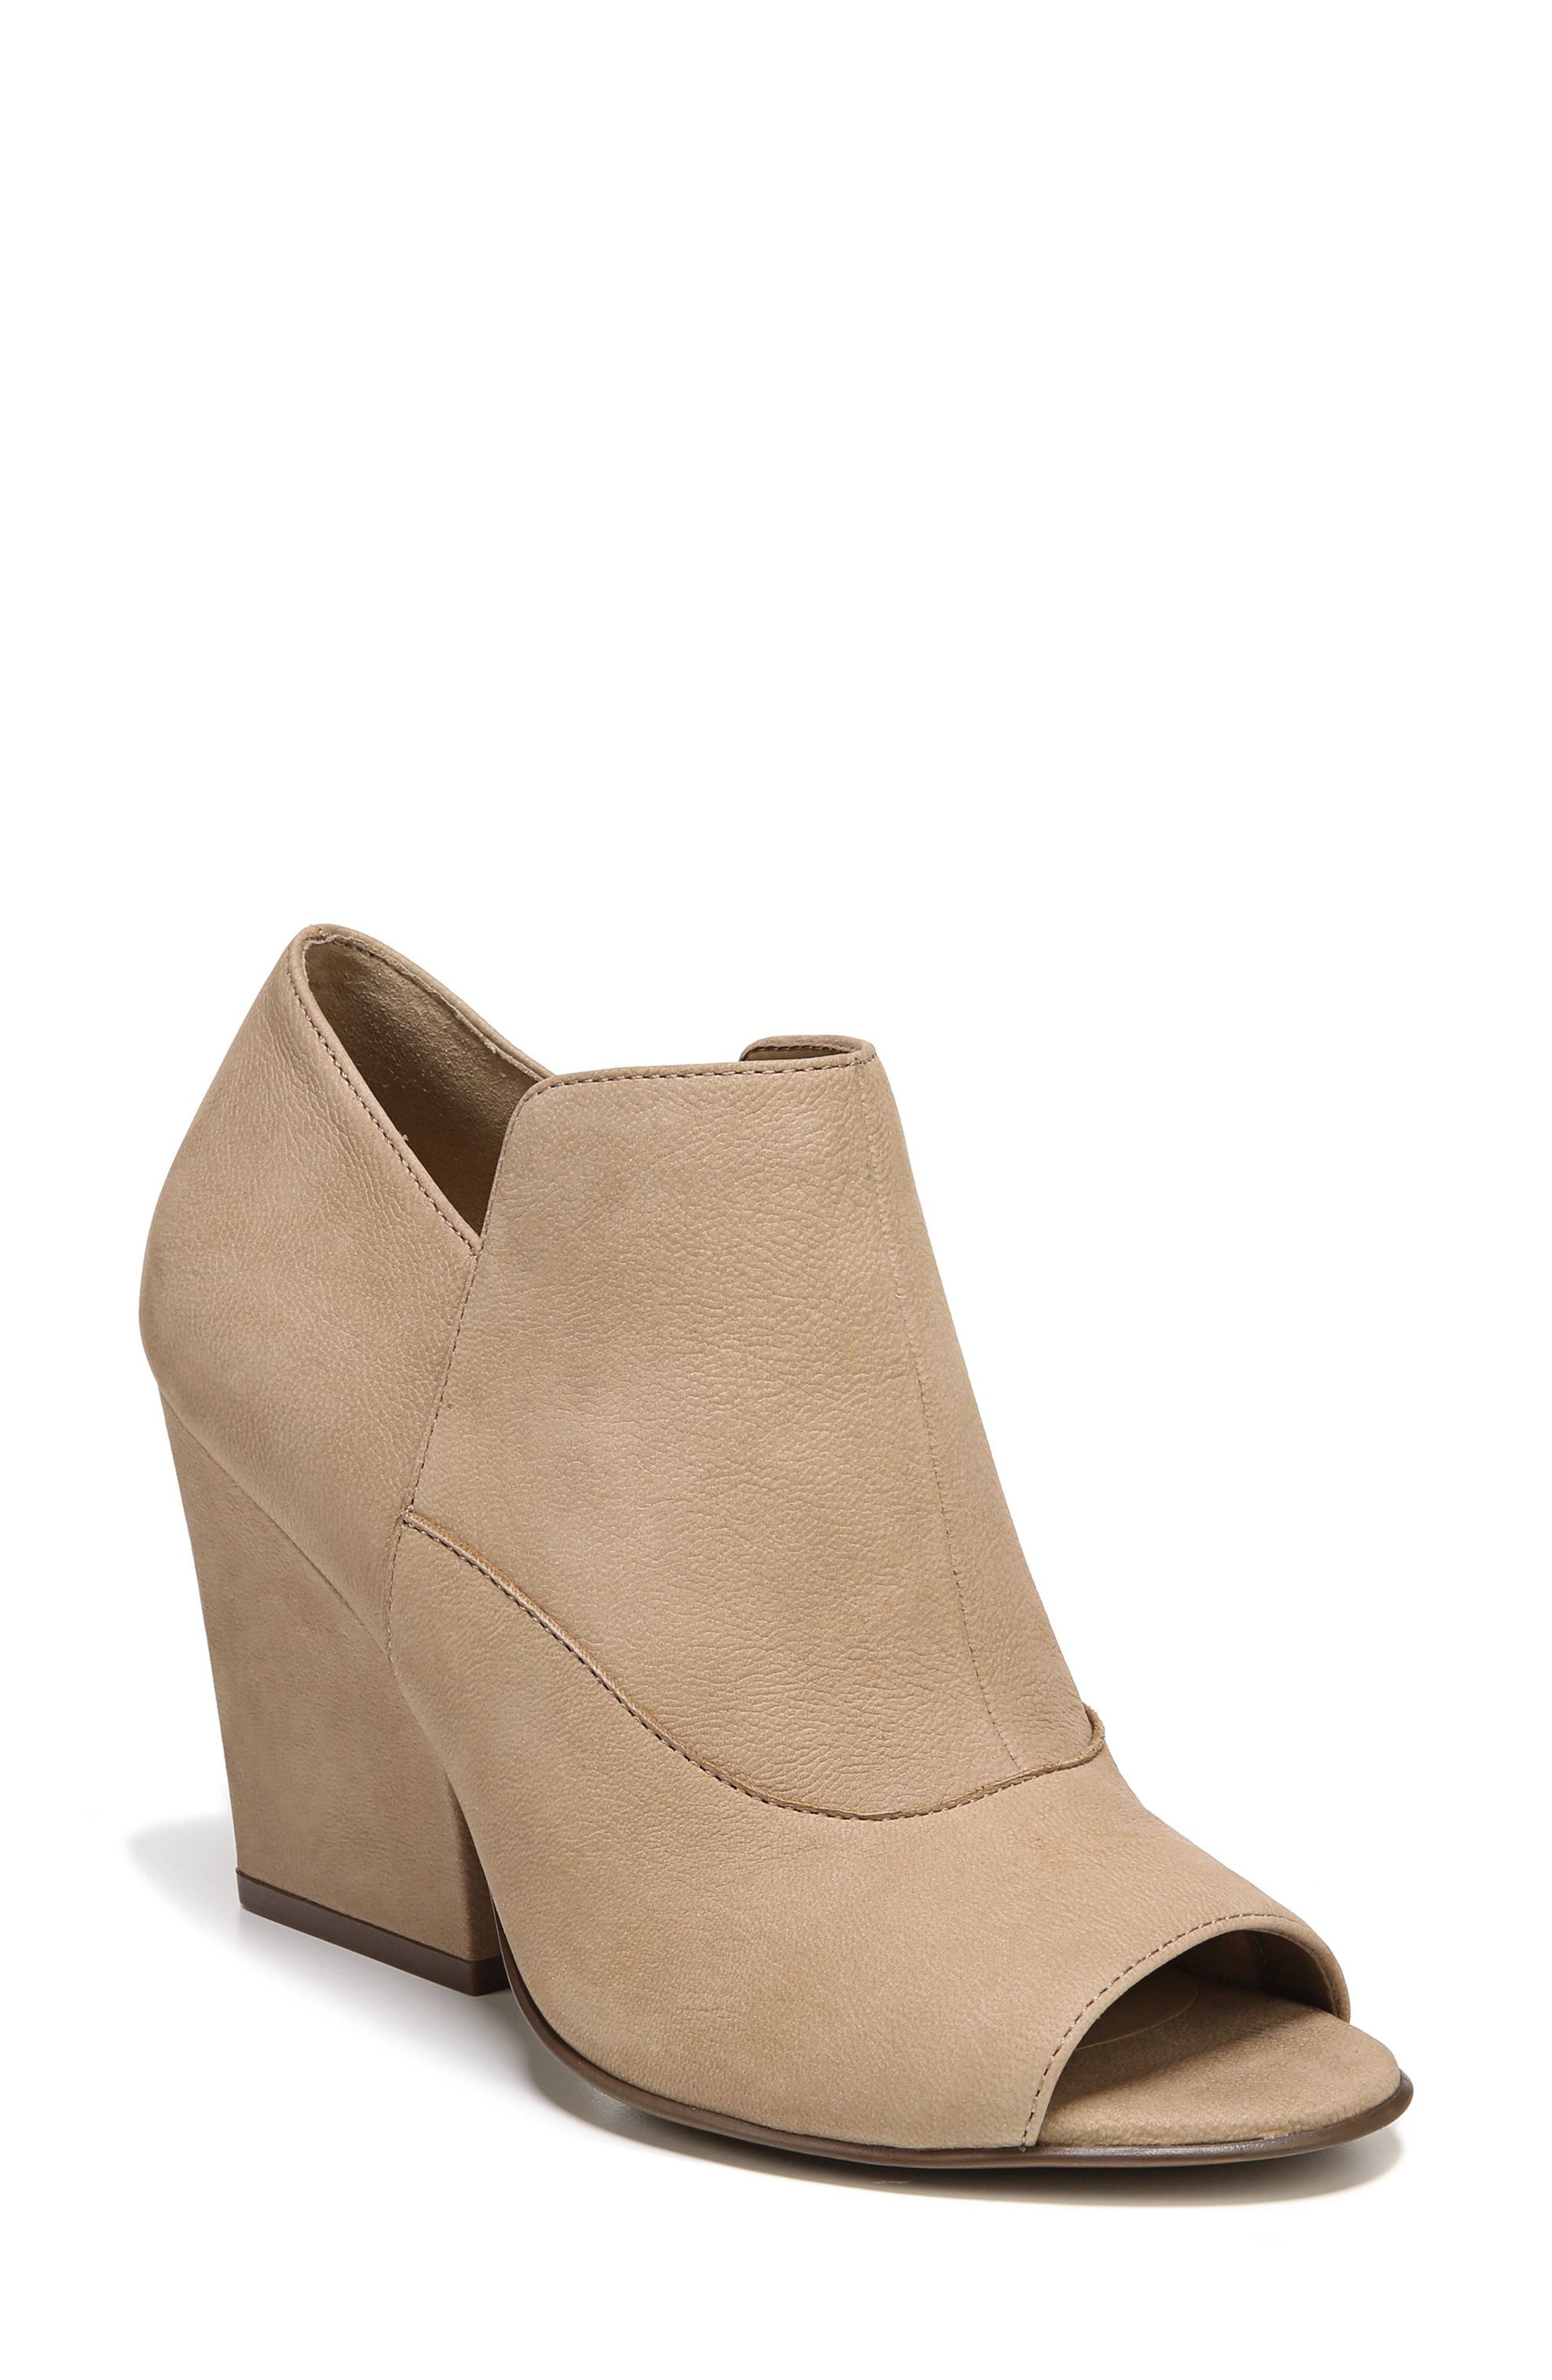 Skylar Open Toe Bootie,                         Main,                         color, Barley Nubuck